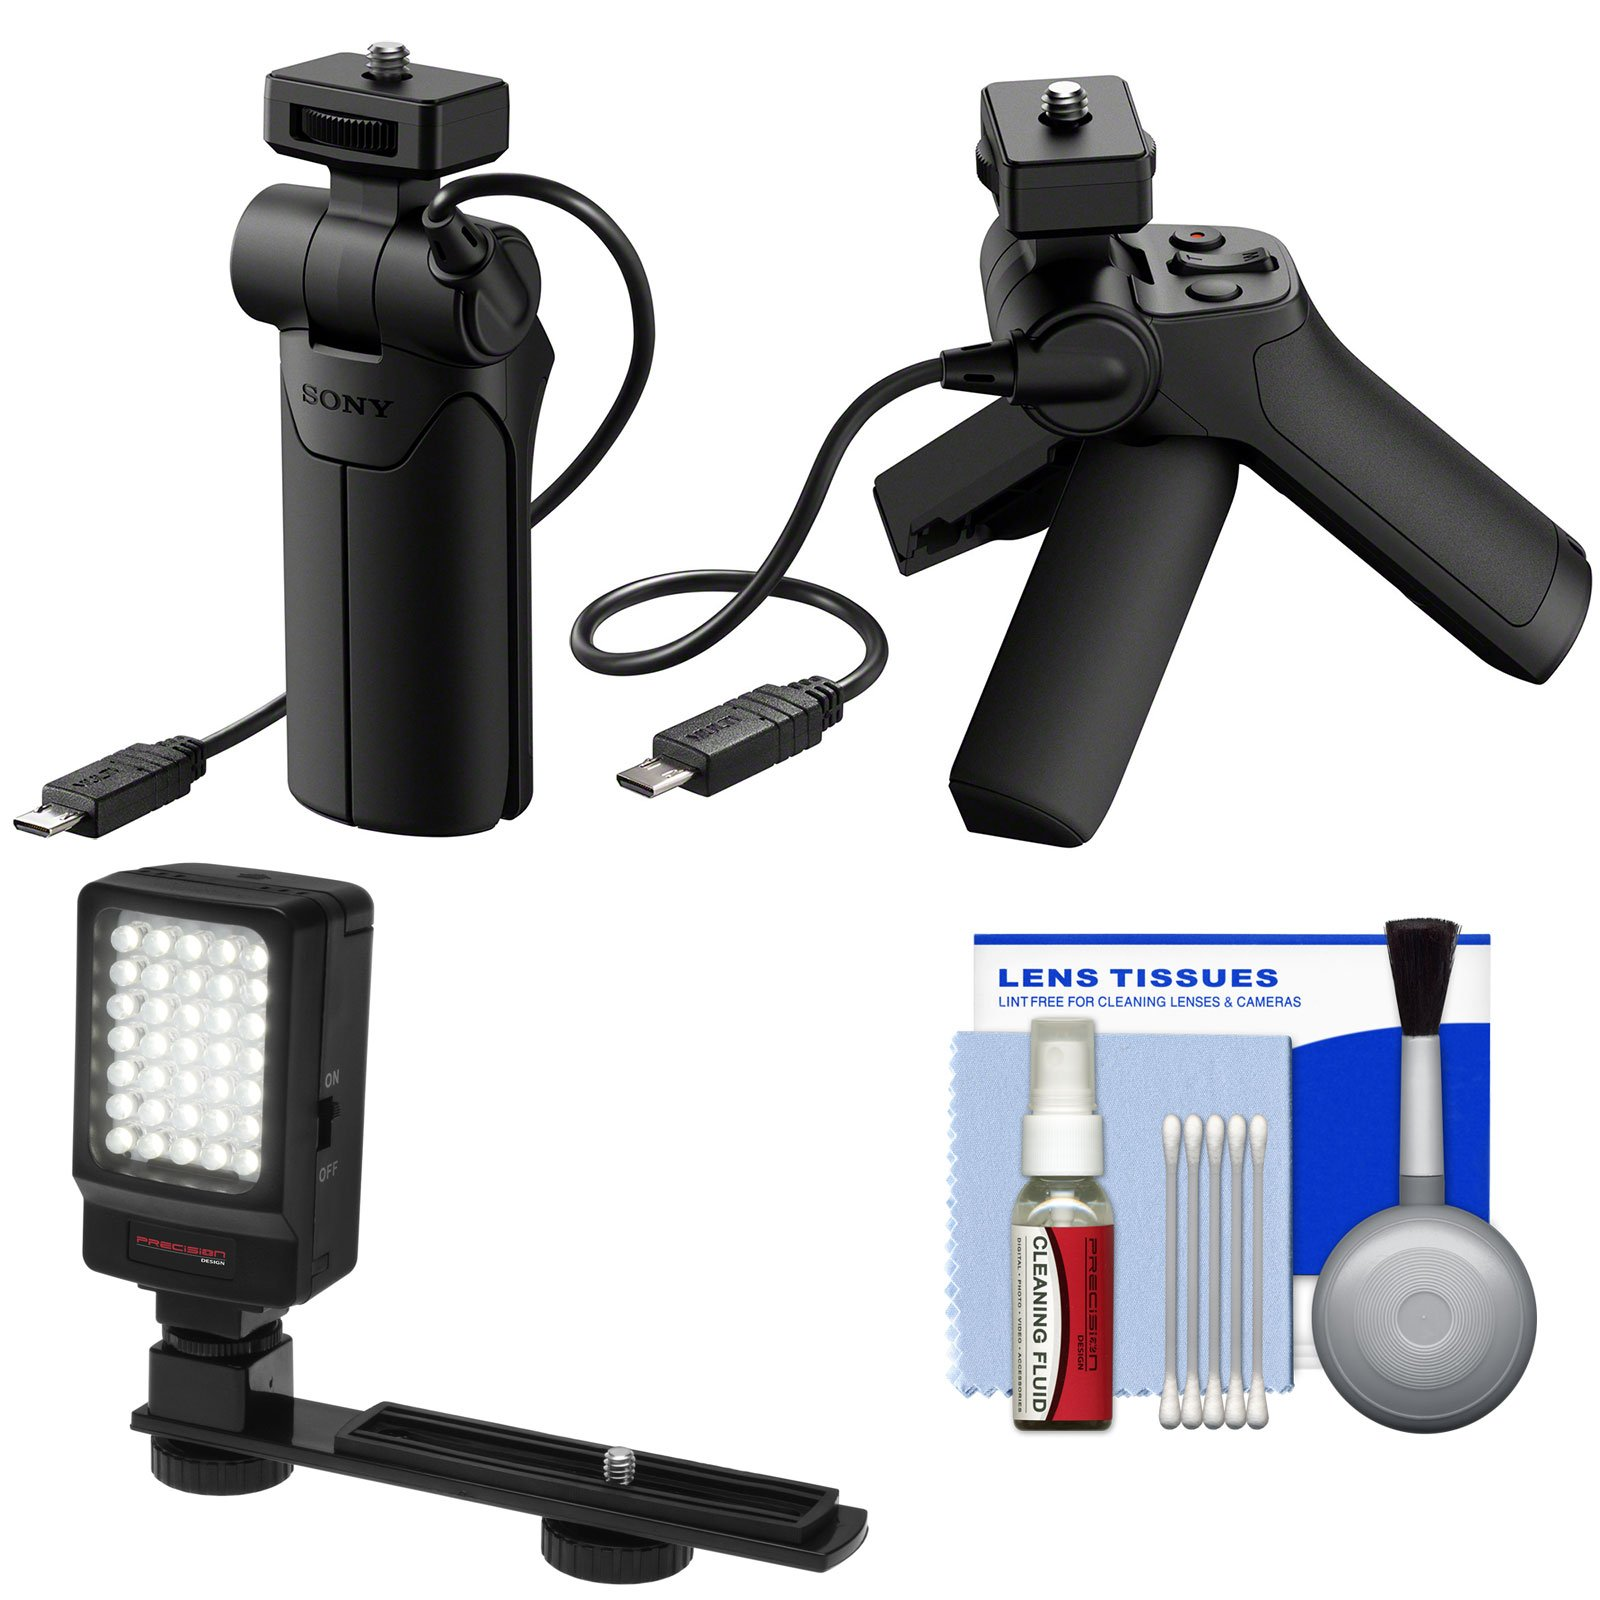 Sony VCT-SGR1 Shooting Grip & Mini Tripod with LED Video Light + Cleaning Kit